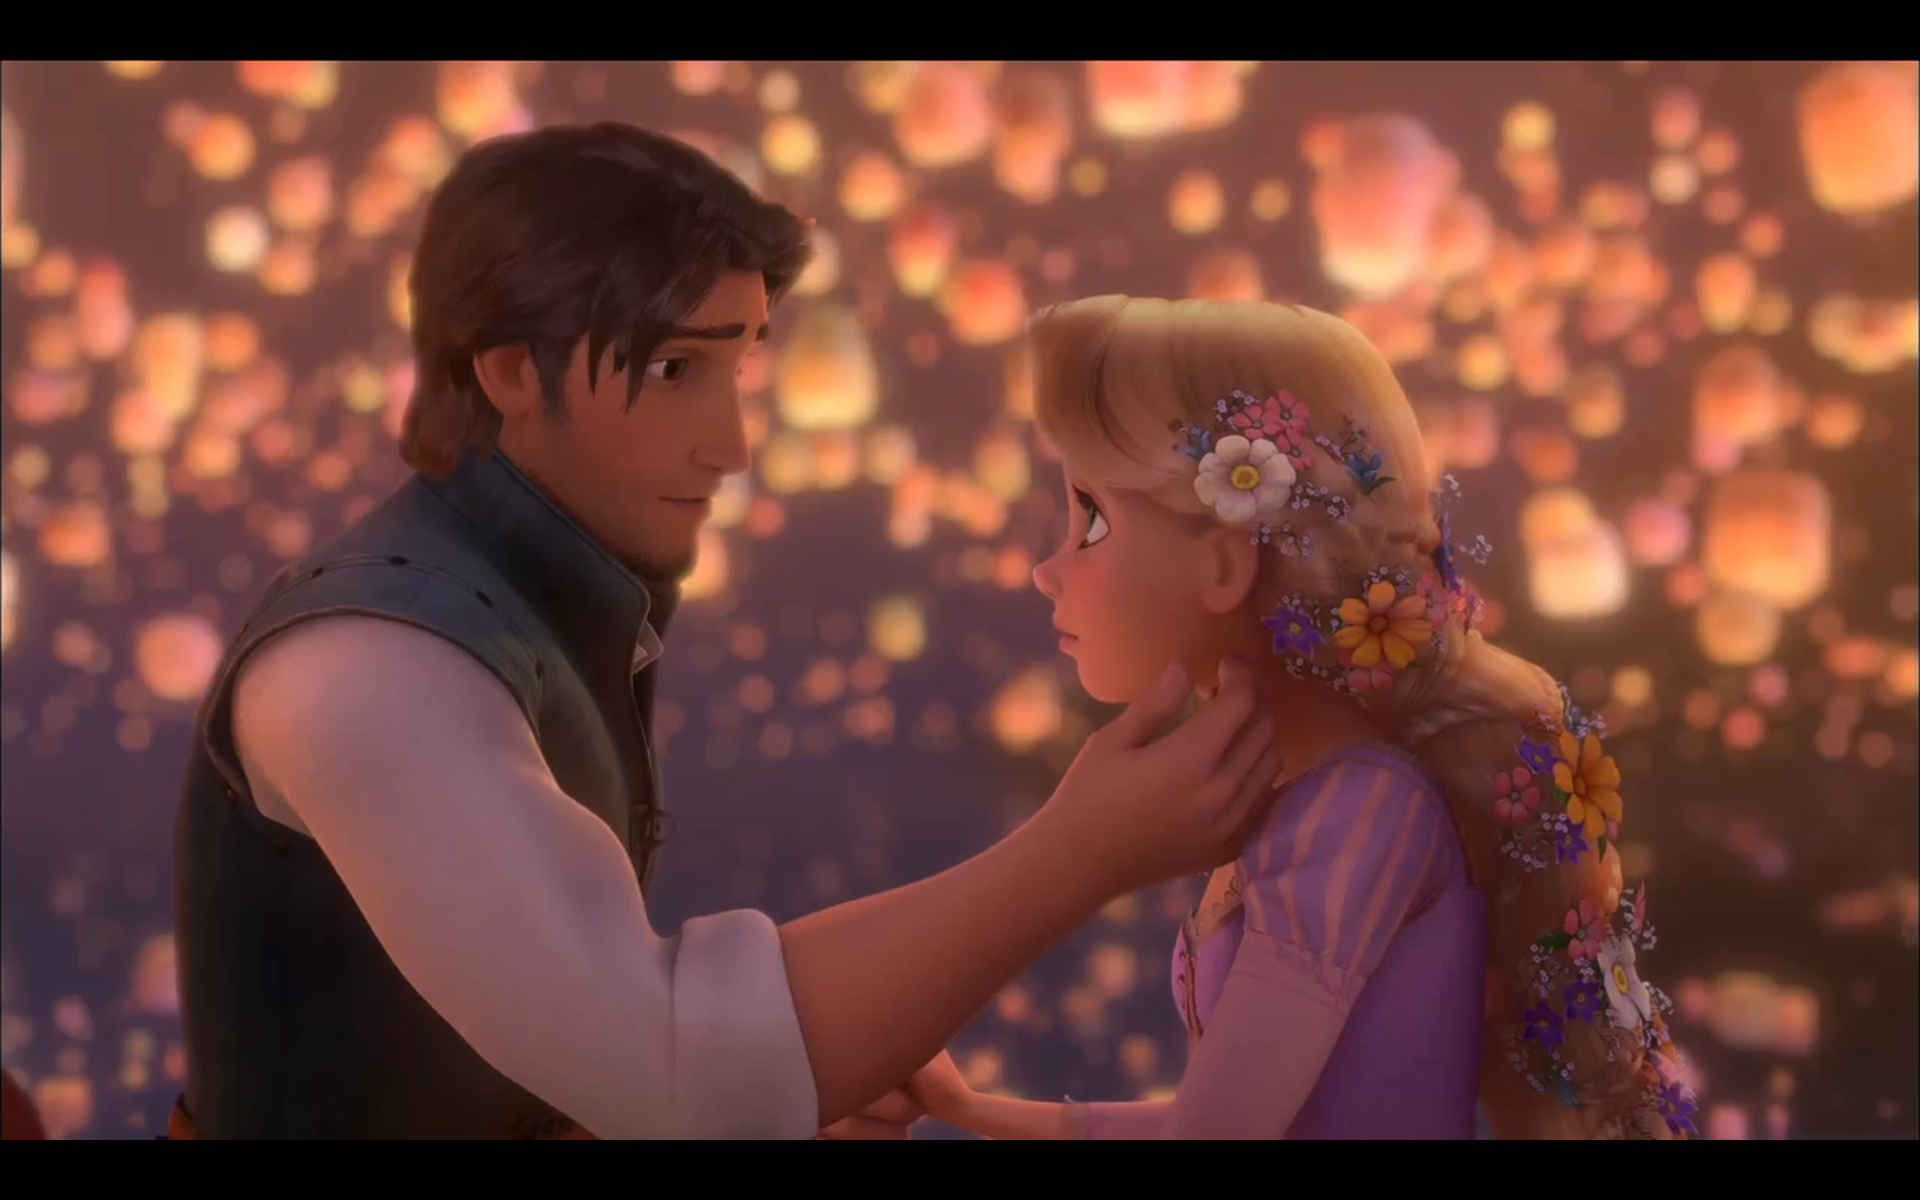 what a tangled romance in this moment HD Wallpaper for your PC http ... for Tangled Wallpapers Hd Romantic  56bof